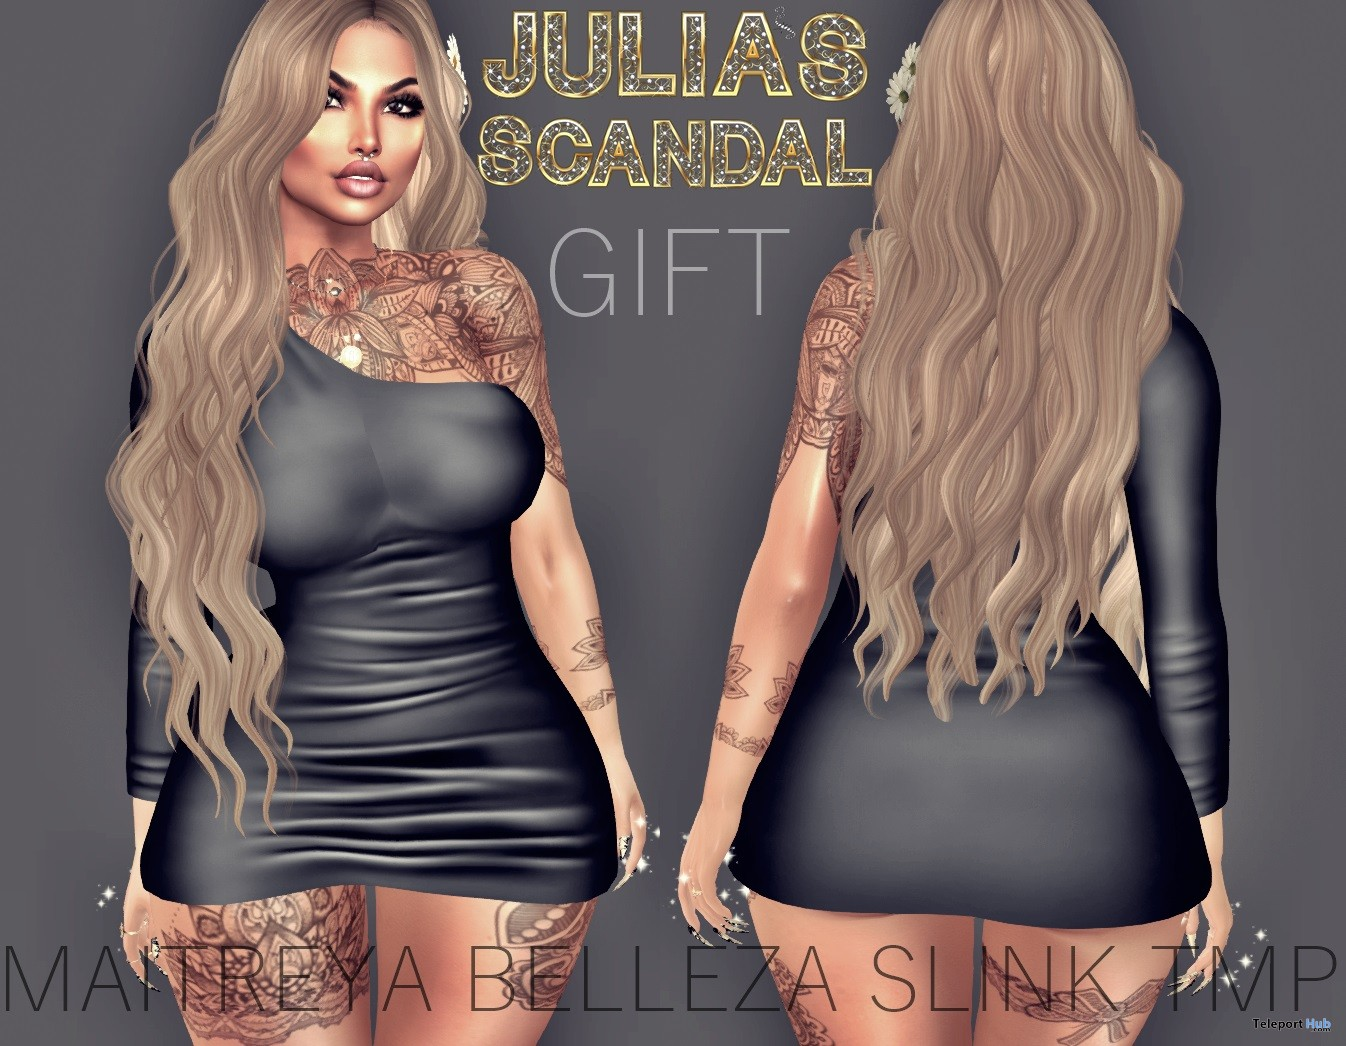 Irma Dress March 2018 Group Gift by Julia's Scandal - Teleport Hub - teleporthub.com